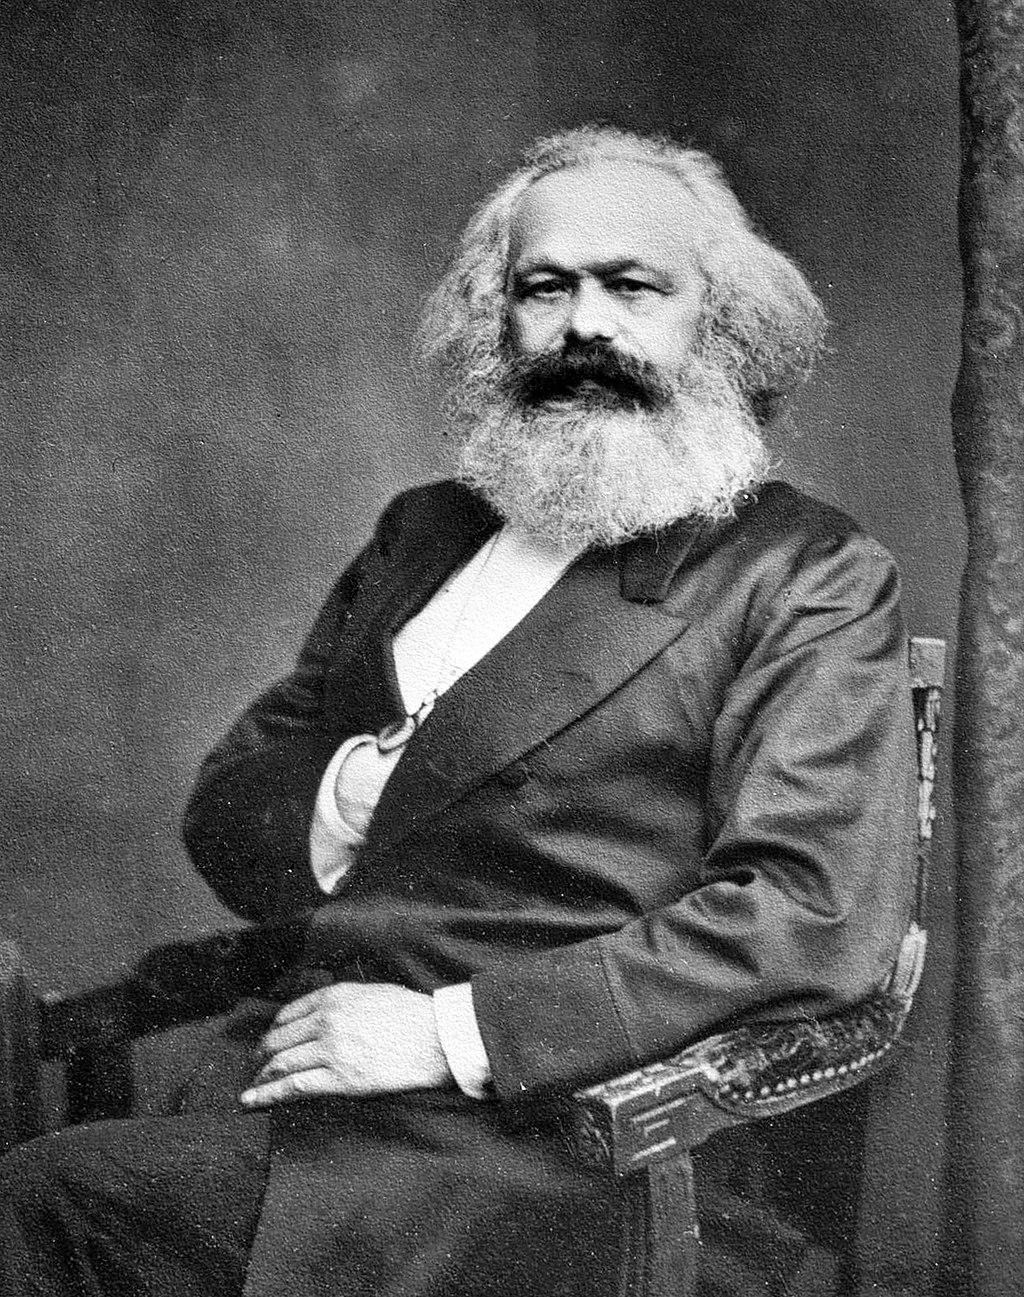 Marxism is being pushed into the curriculum. (Image: wikimedia / CC0 1.0)